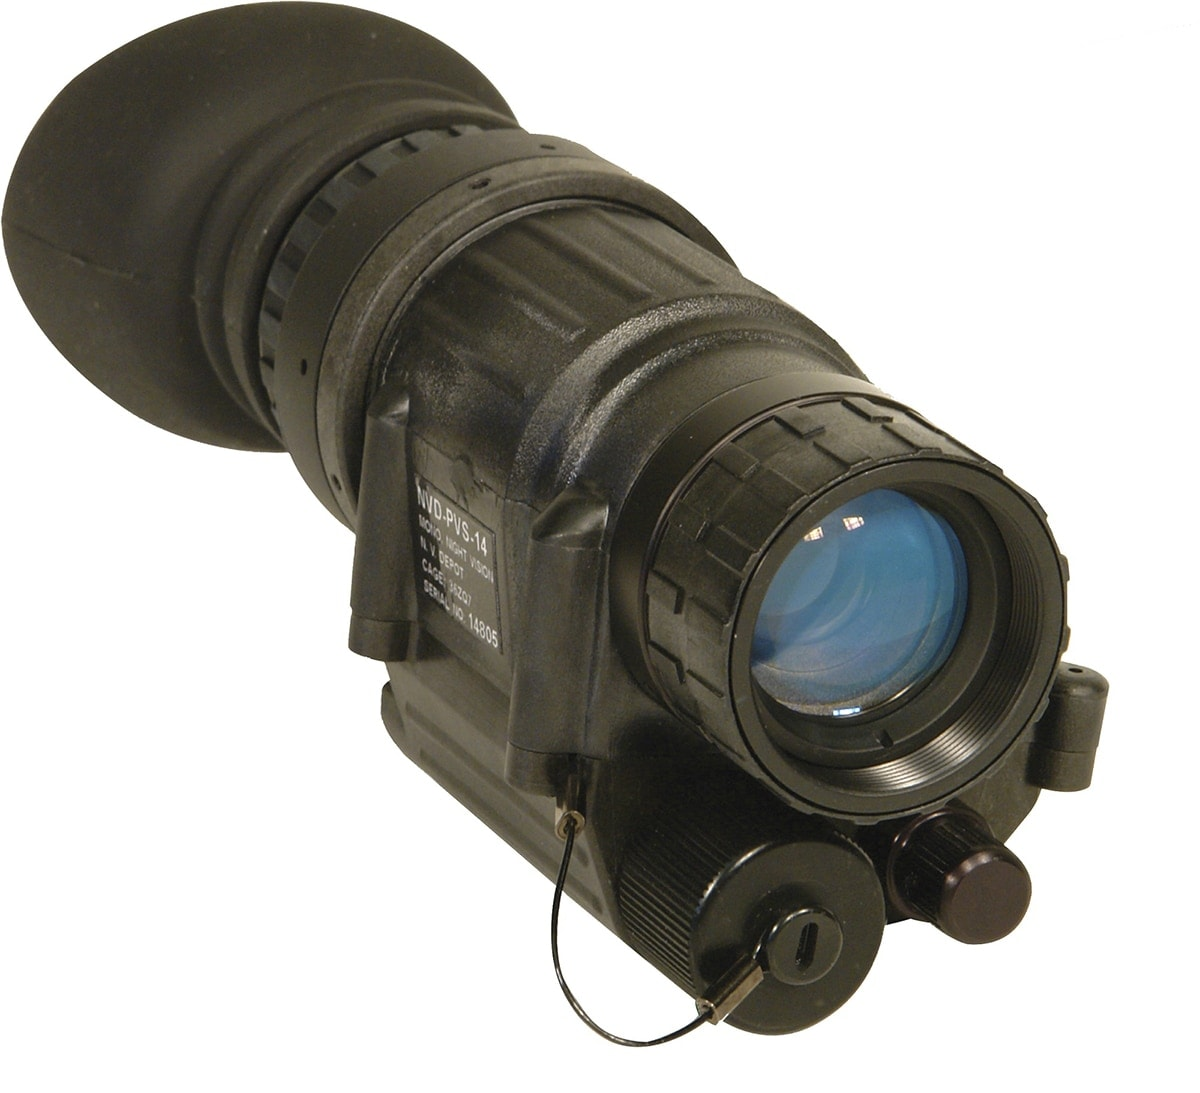 The Sentry monocular offers night vision capabilities for a myriad of missions. (Photo: Vista Outdoor)